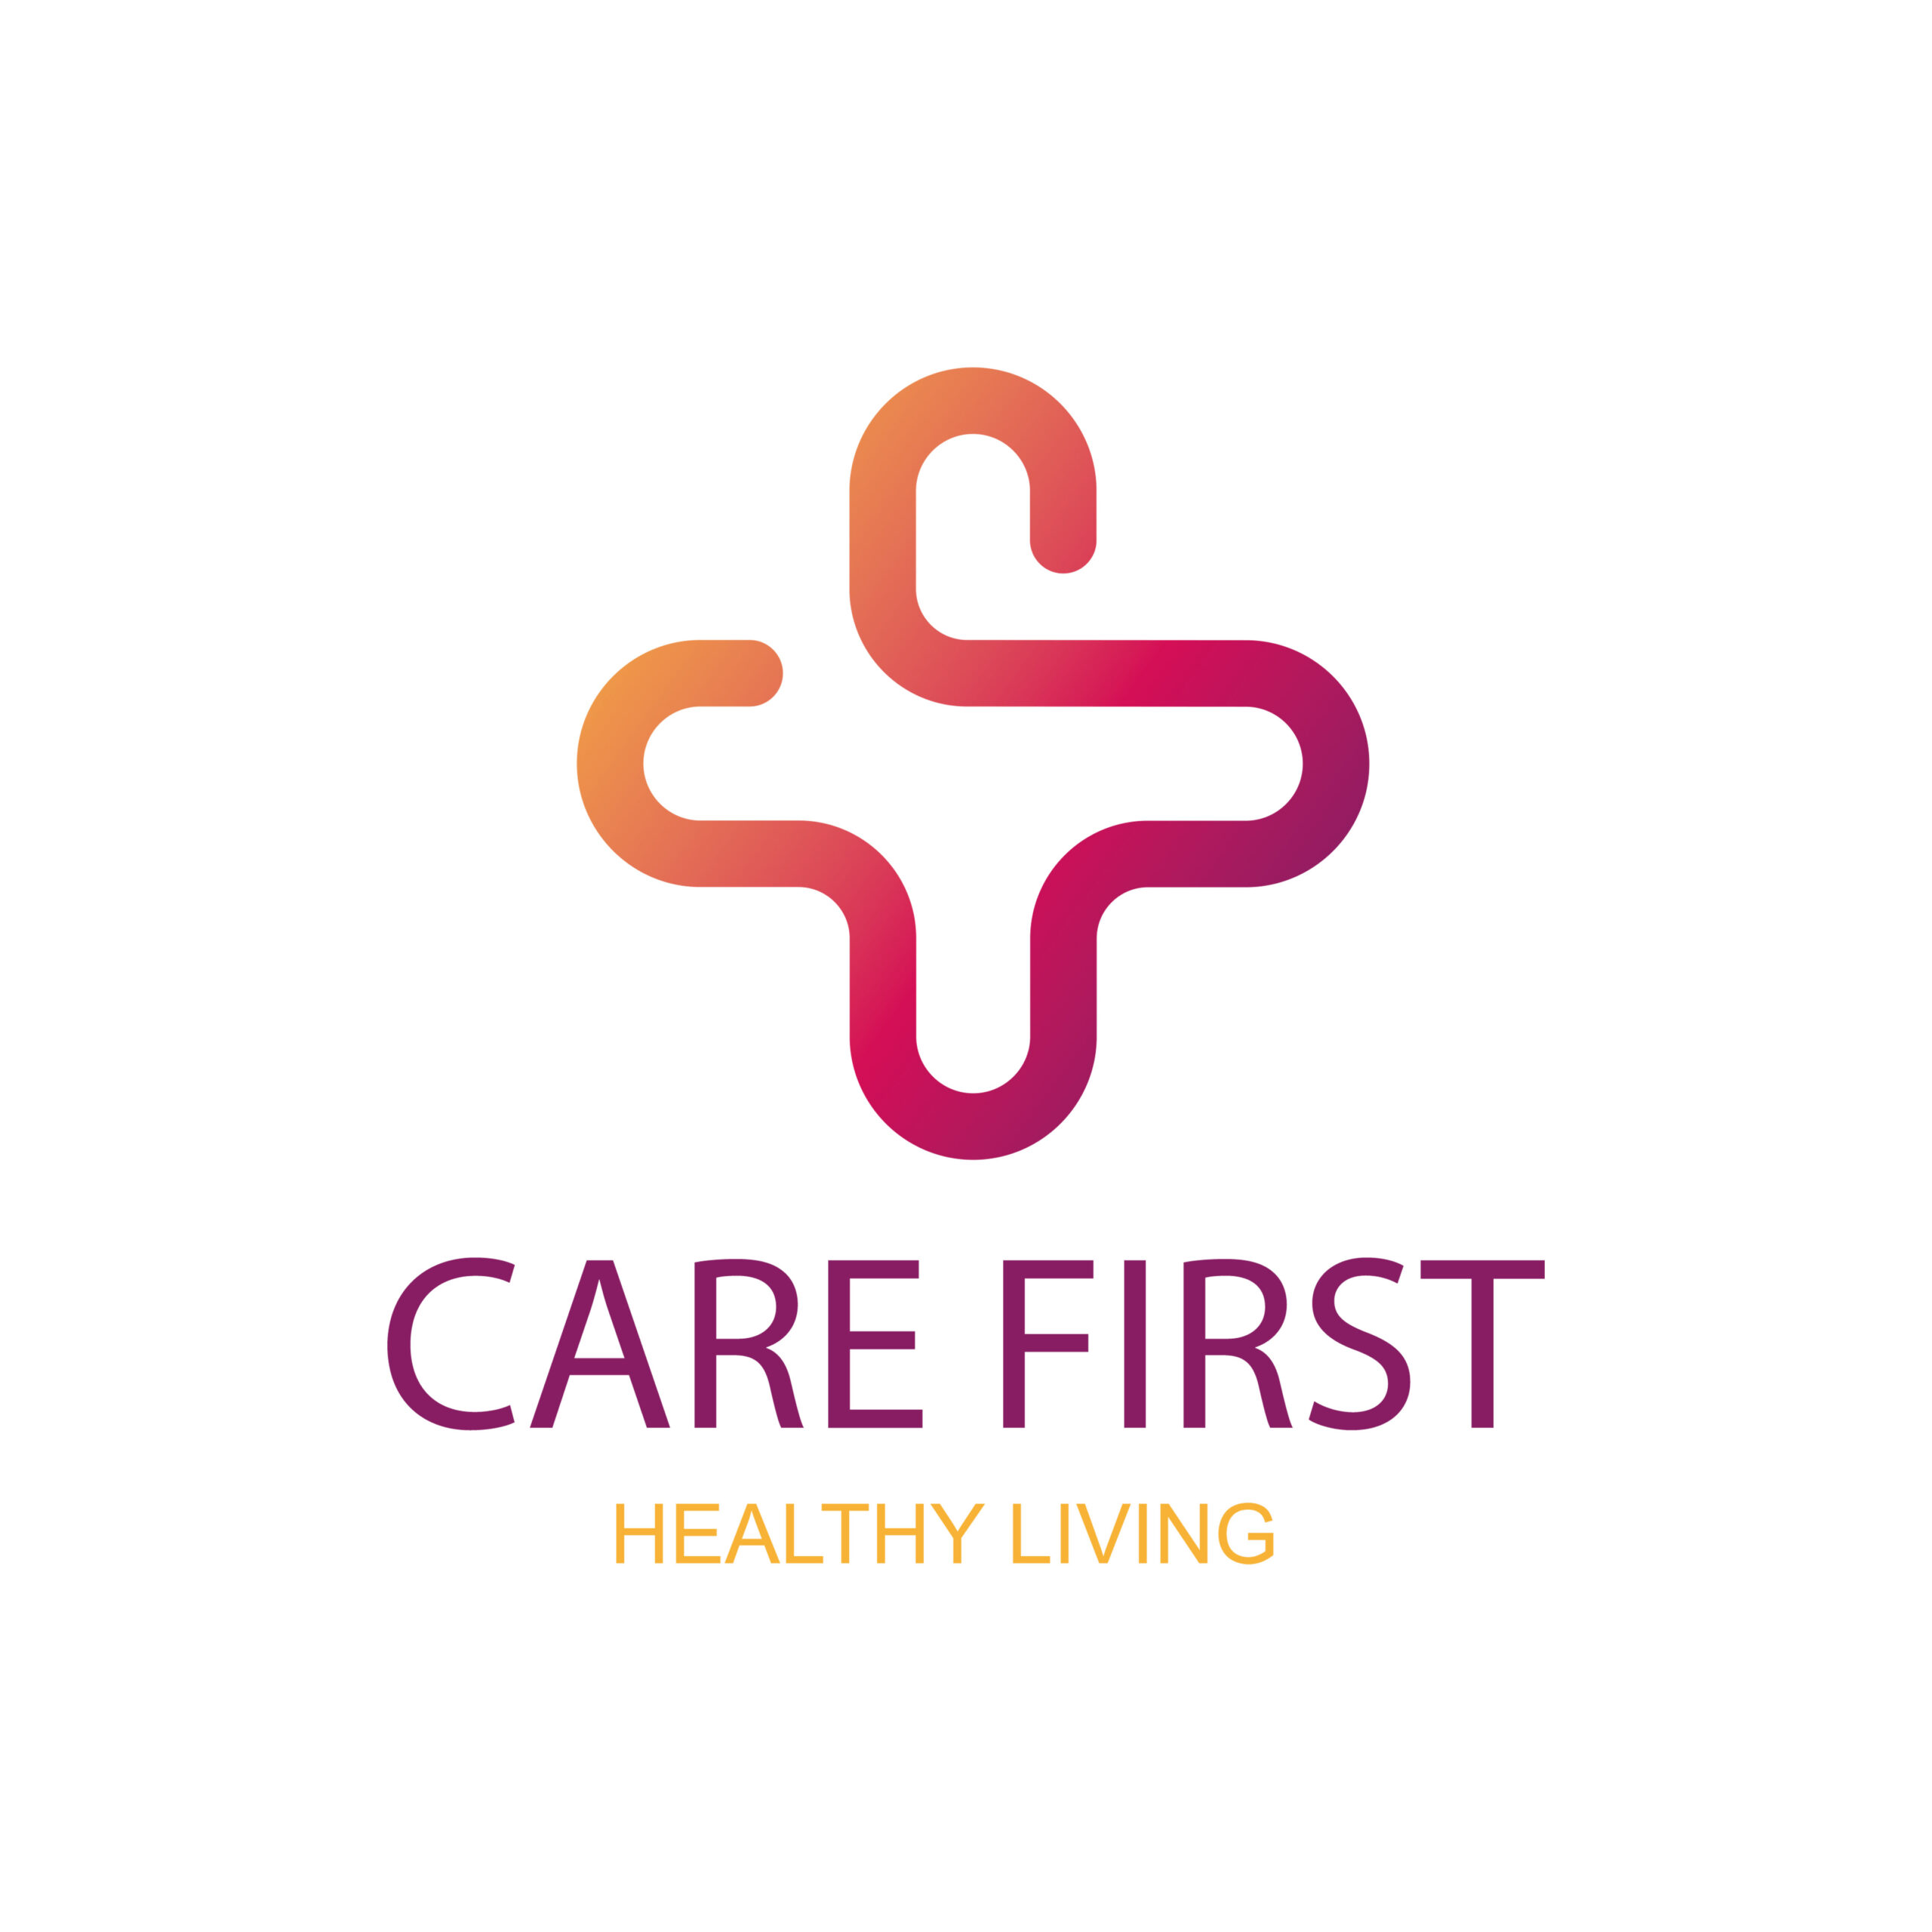 CARE FIRST WEBSITE MASTER